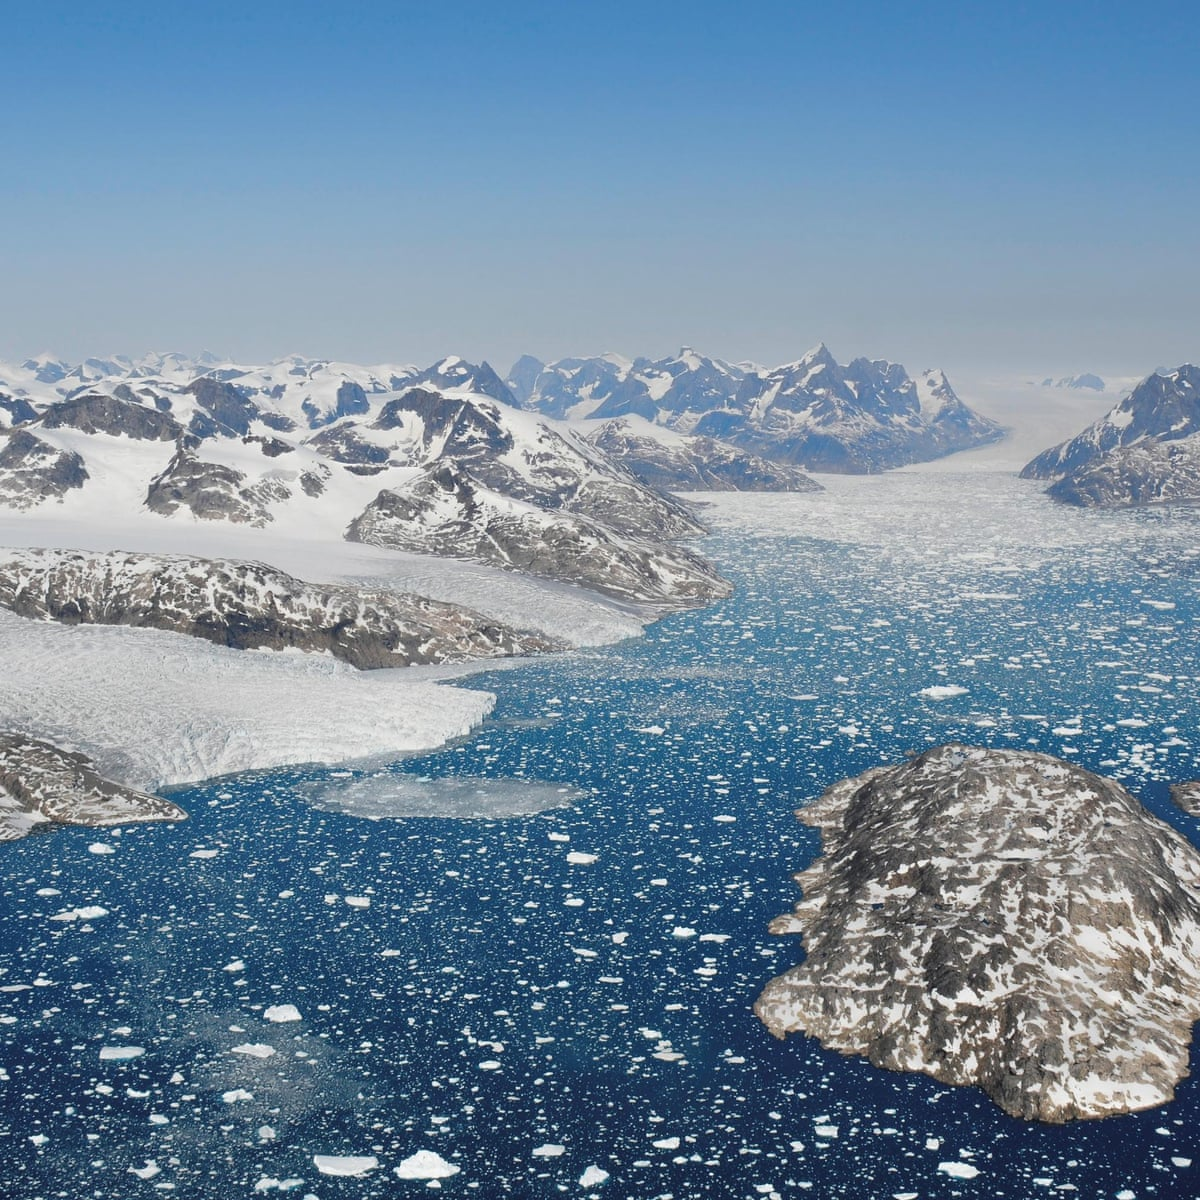 Greenland's ice sheet melting seven times faster than in 1990s |  Environment | The Guardian